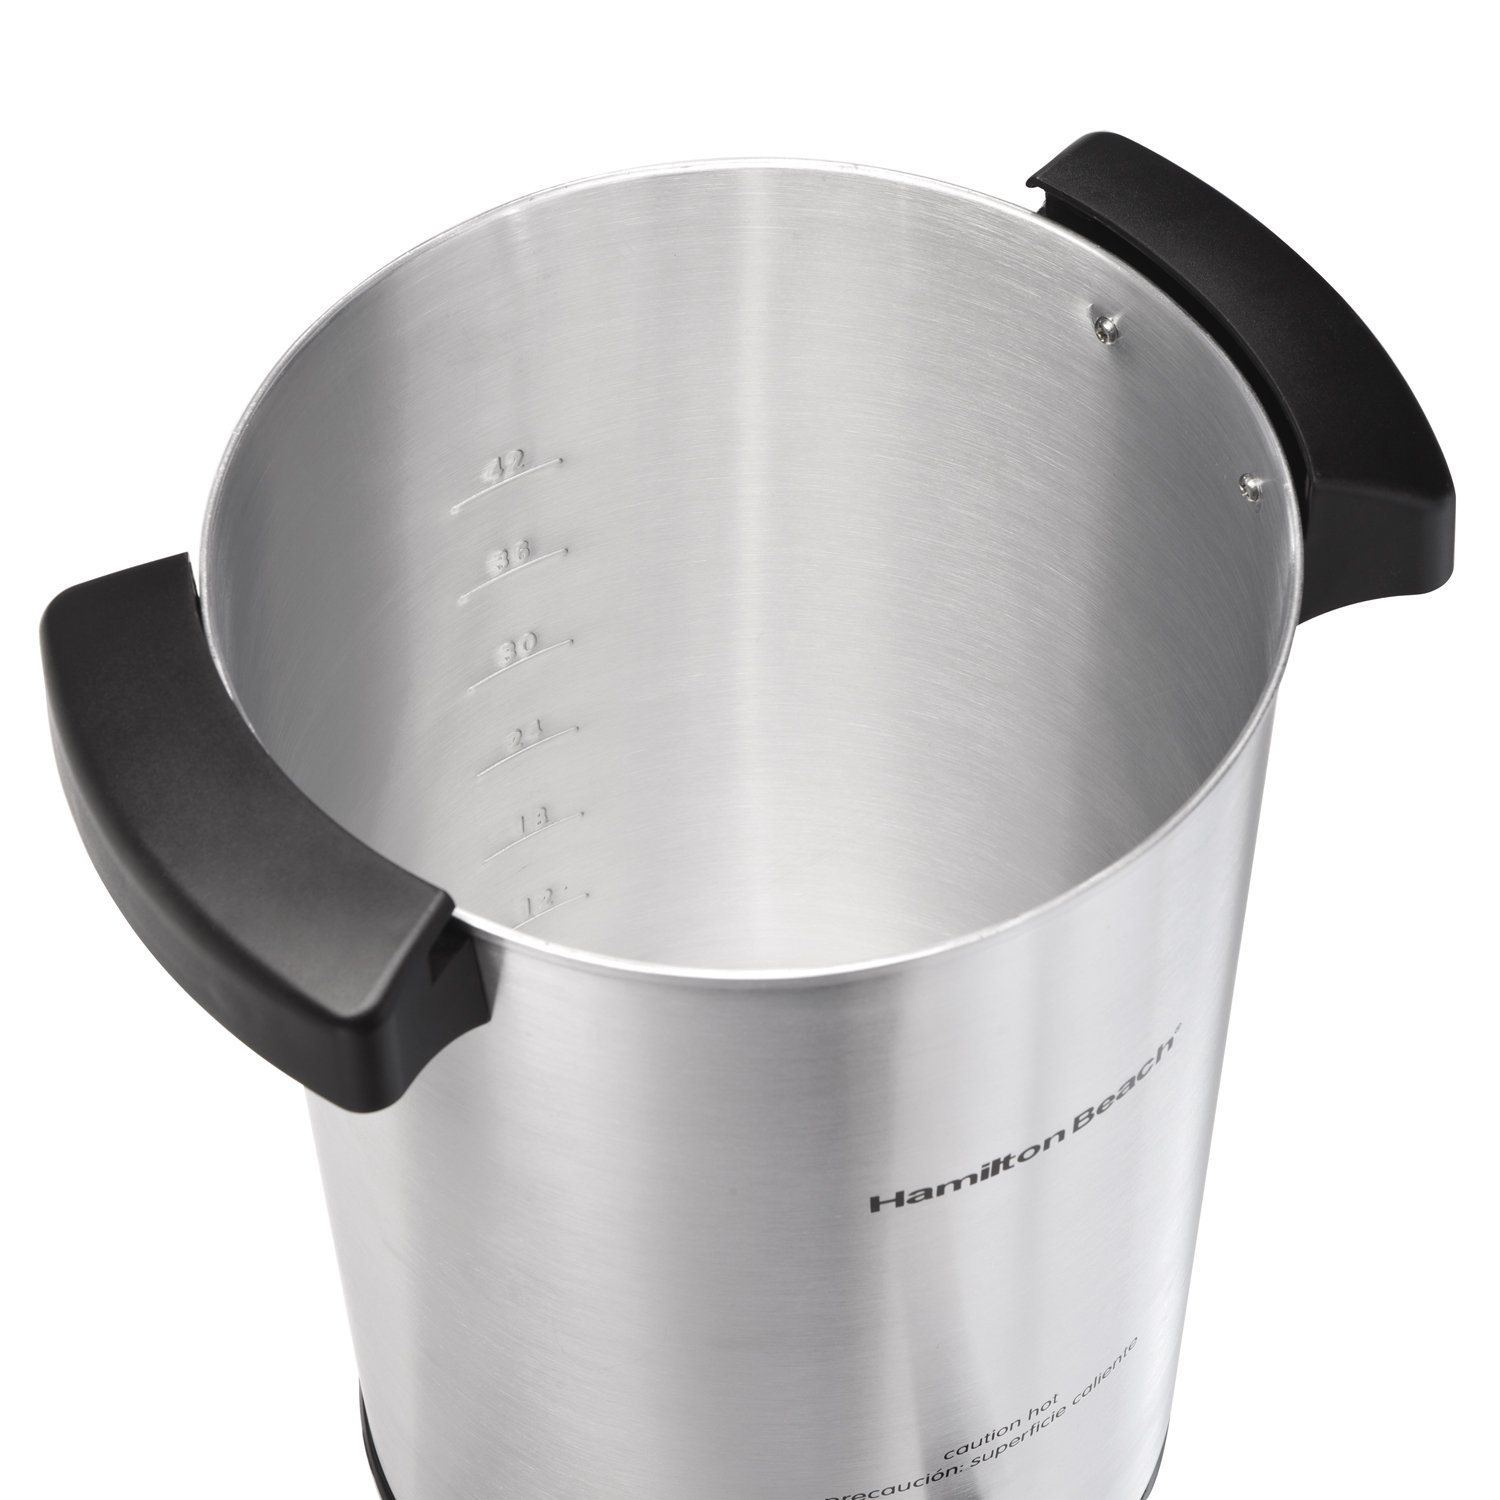 Hamilton beach large coffee urn